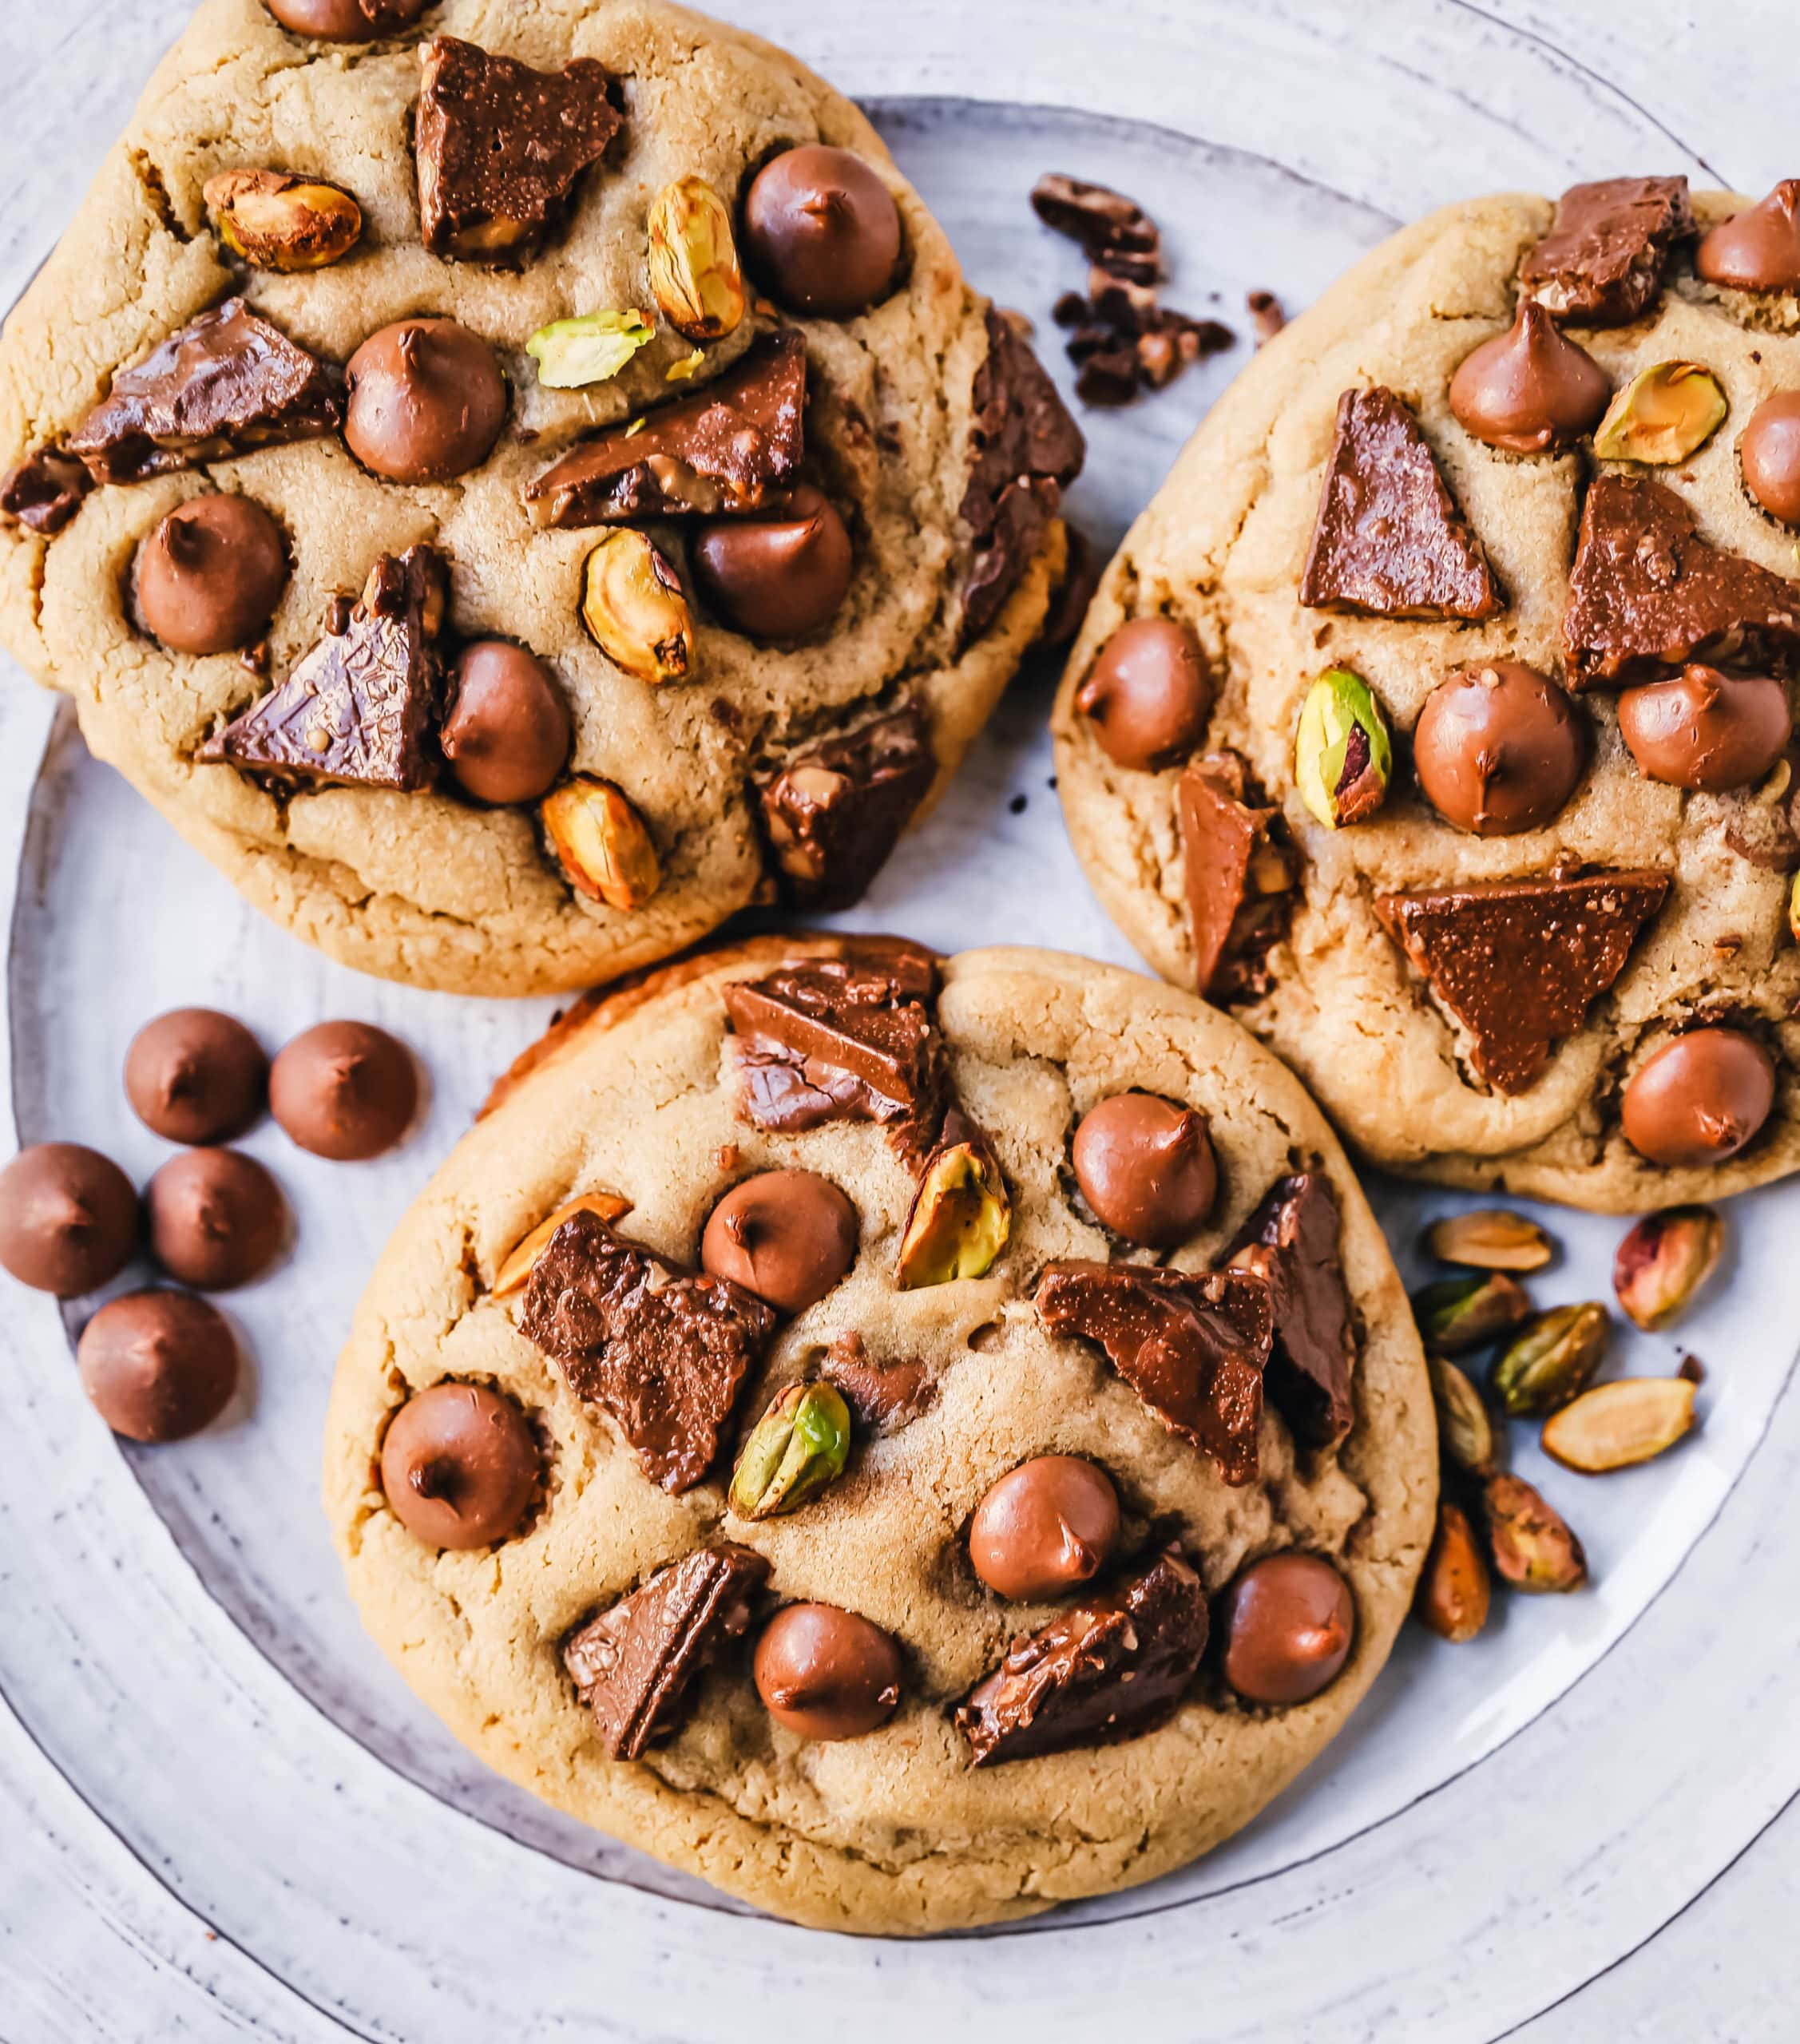 Pistachio Toffee Chocolate Chip Cookies Thick, chewy bakery-style cookies with milk chocolate toffee, pistachios, and milk chocolate chips. A sweet and salty cookie!